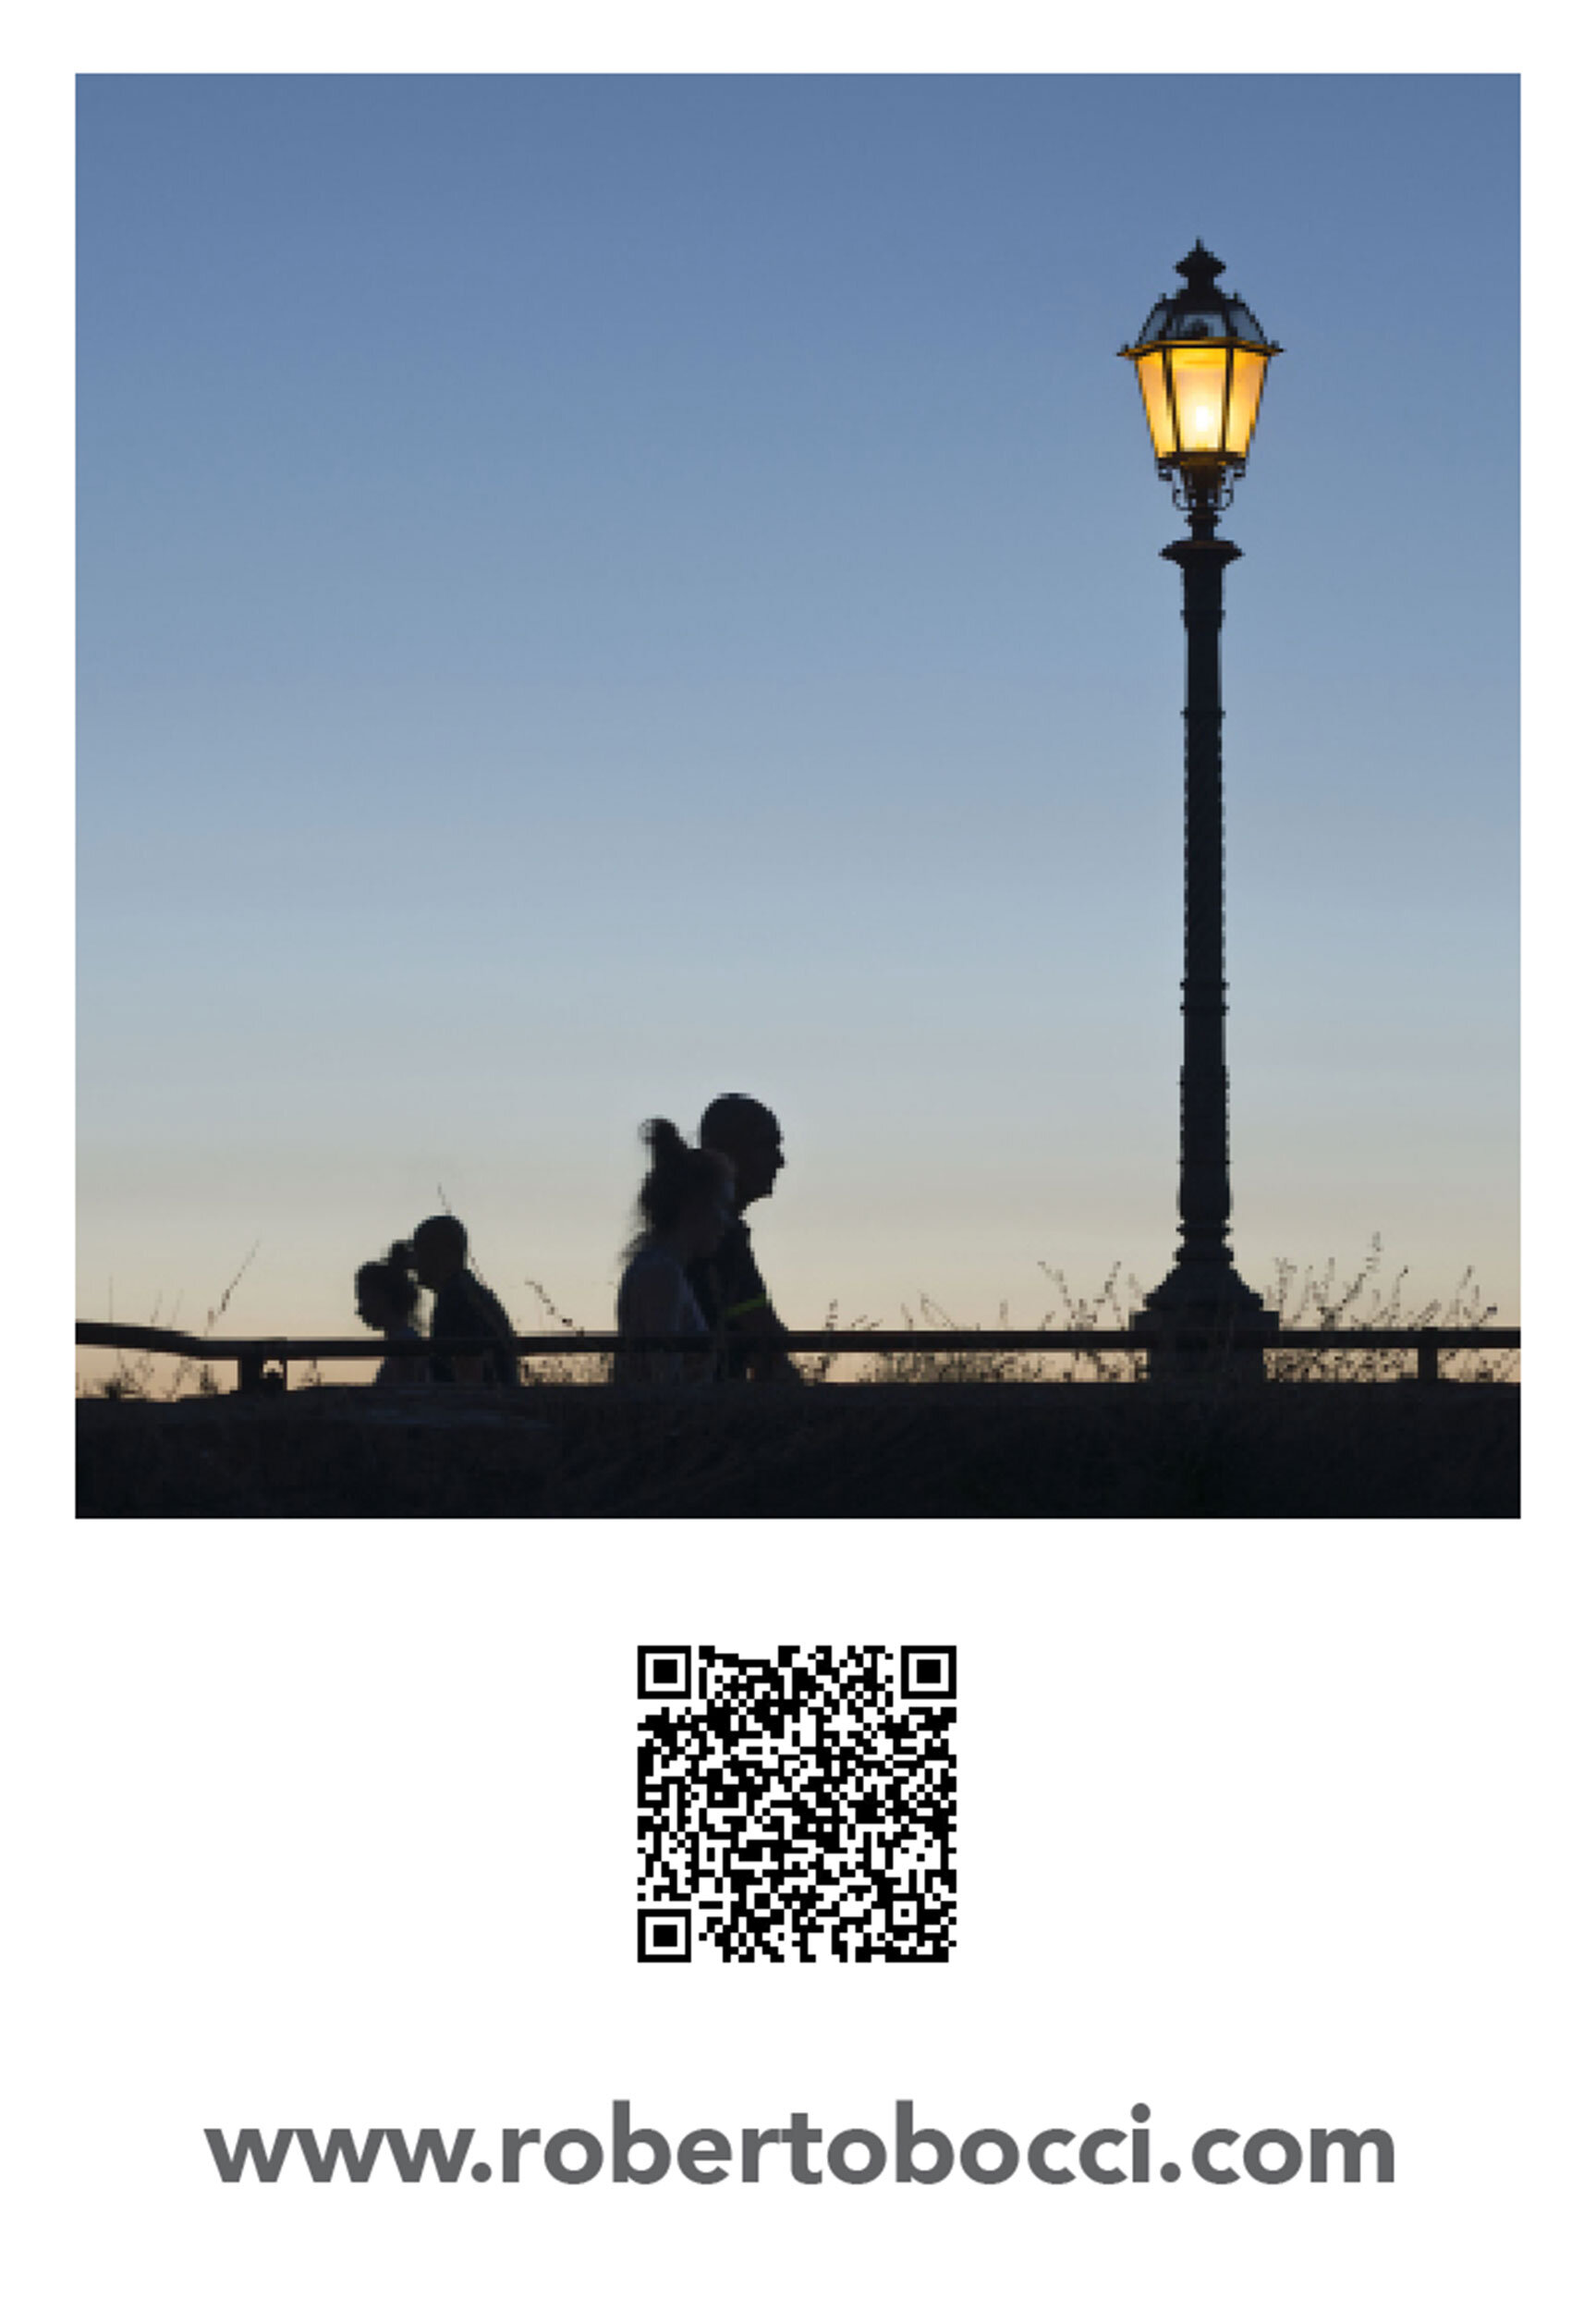 In the exhibition visitors could scan this QR code on the project statement with their phone and see a video loop with all the images from the show and other TwiLight materials. You can scan the code too!  Enjoy…. Roberto Bocci